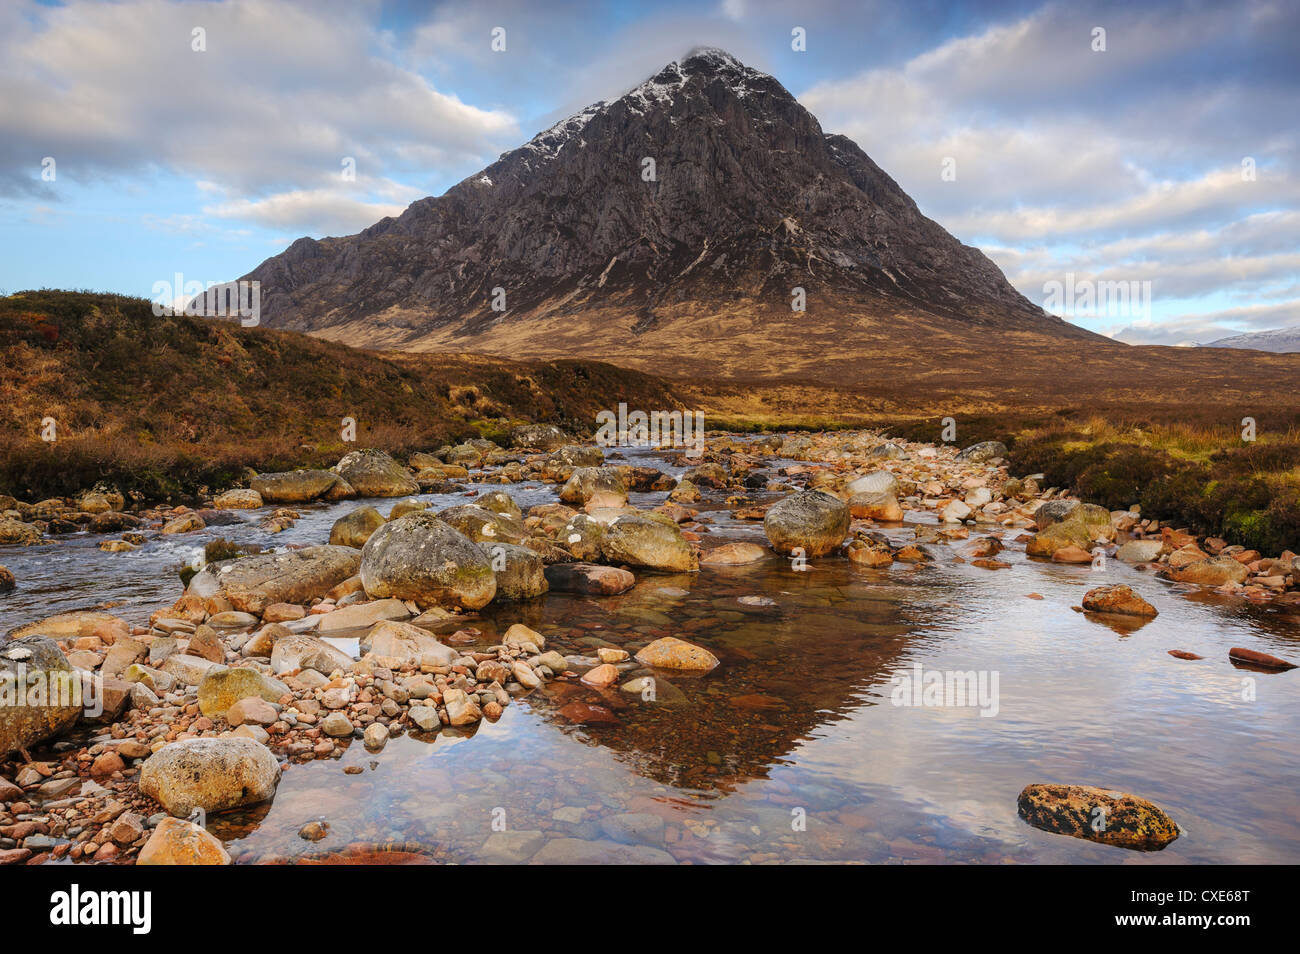 Buachaille Etive Mor and the River Coupall, Glen Etive, Rannoch Moor, Western Highlands, Scotland - Stock Image